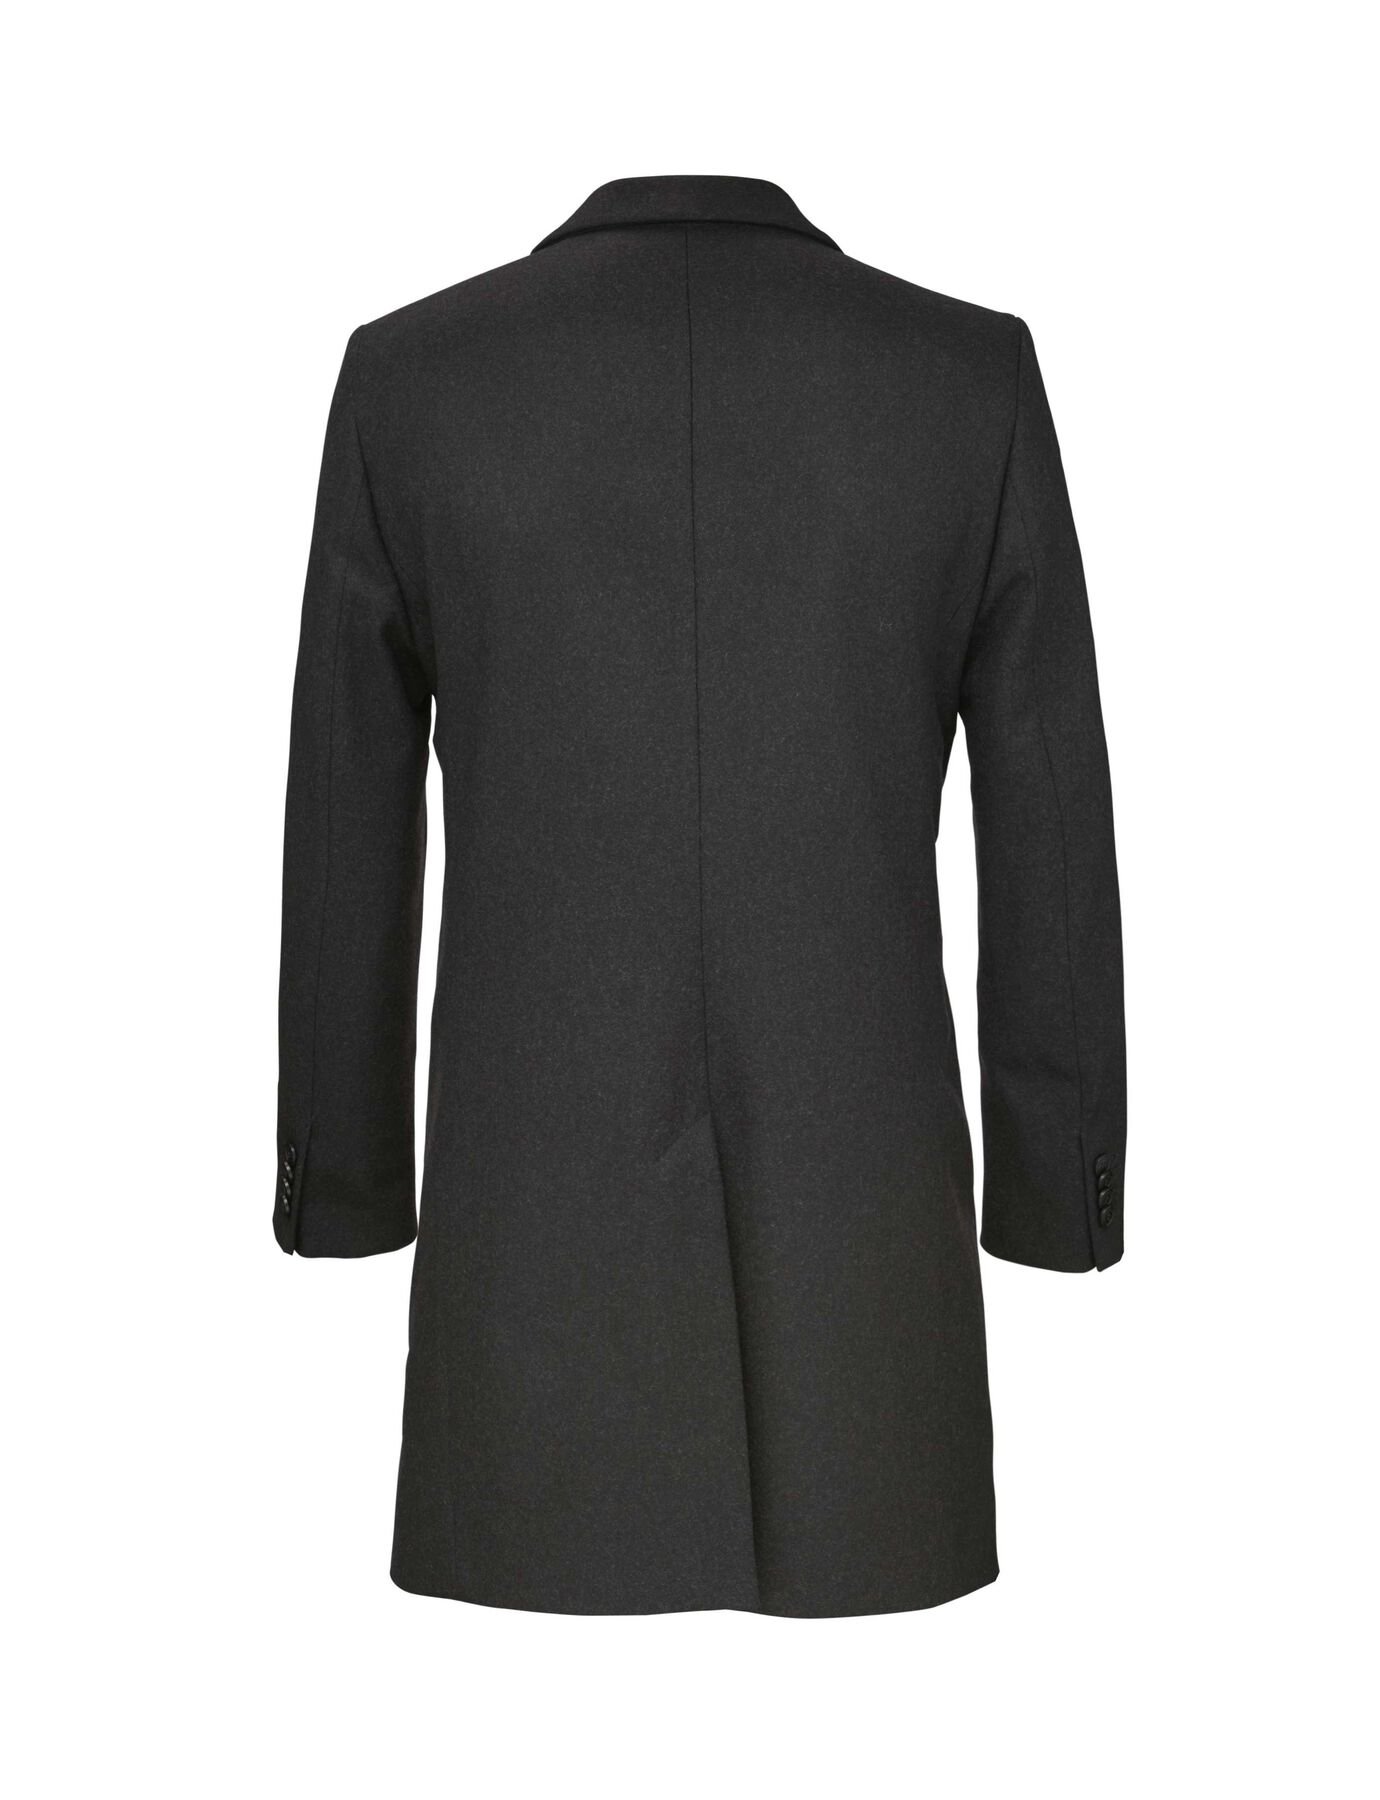 DEMPSEY 18 COAT in Charcoal from Tiger of Sweden